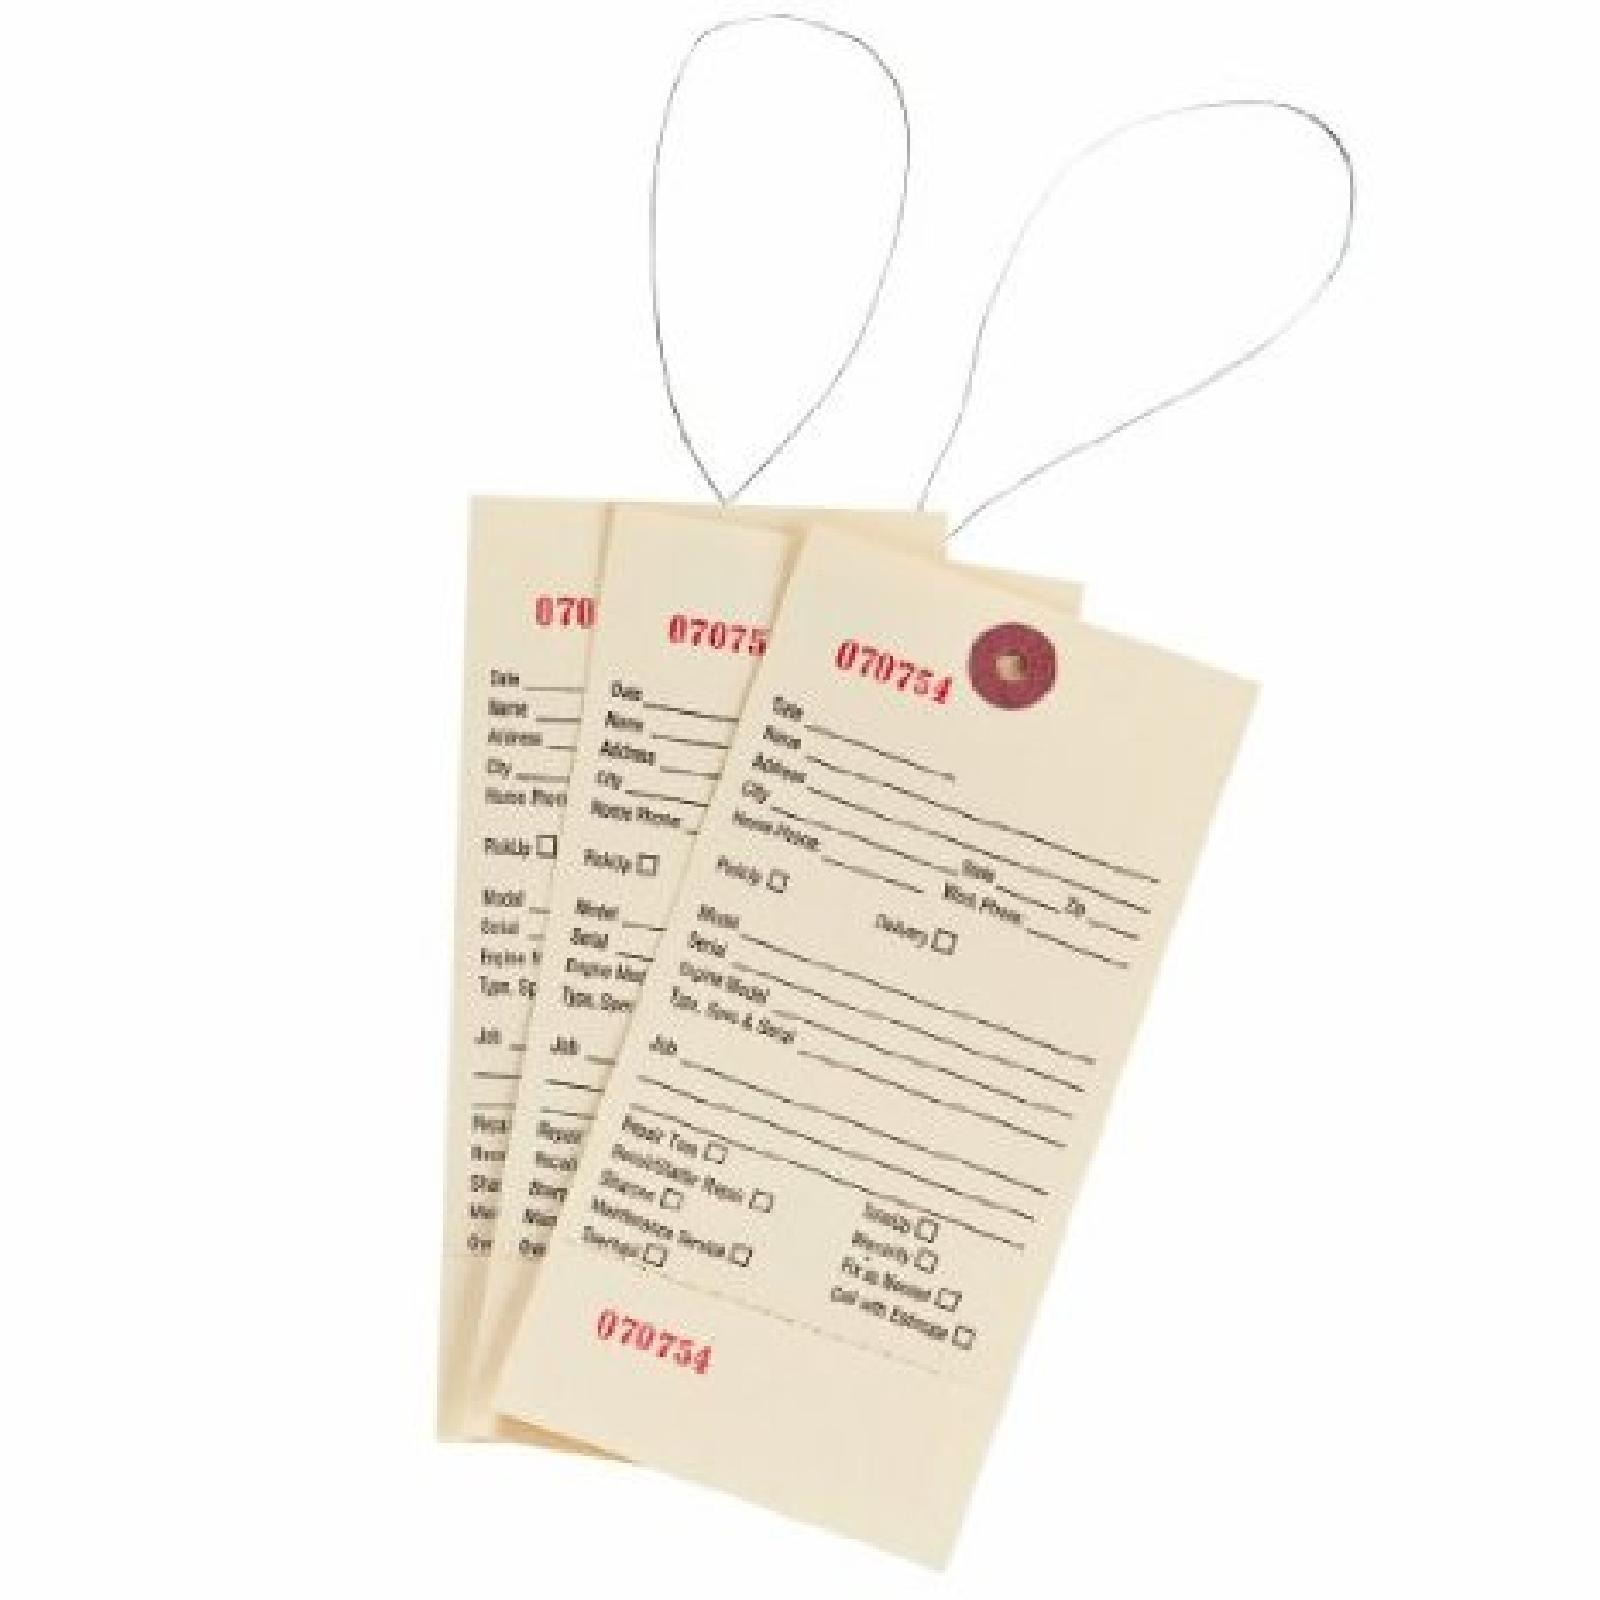 SERVICE TAGS 500 COUNT PE part# 10-002 by Oregon